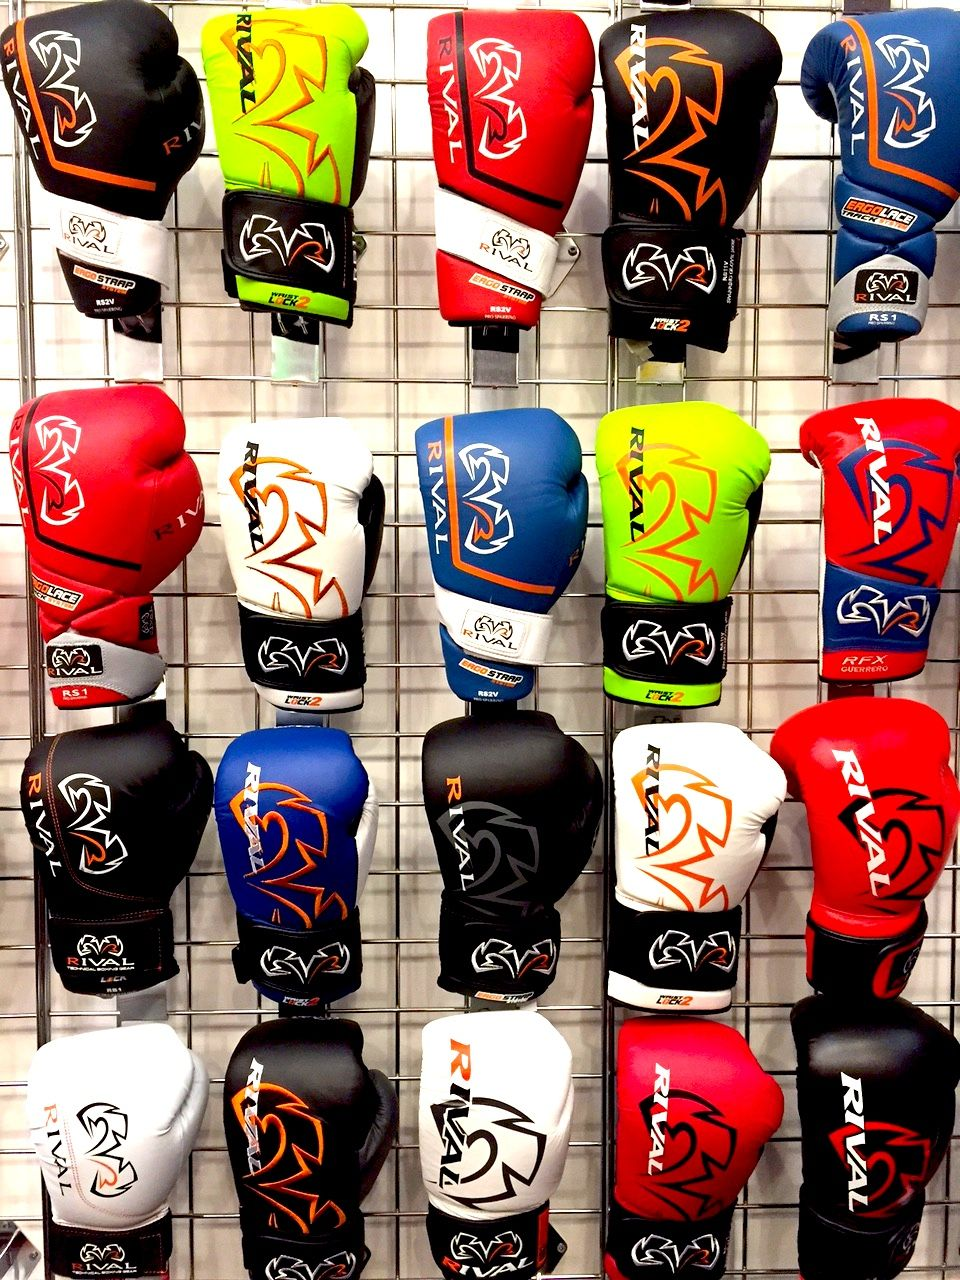 632286f0c68 Rival Boxing Gloves Stock..  boxing gloves